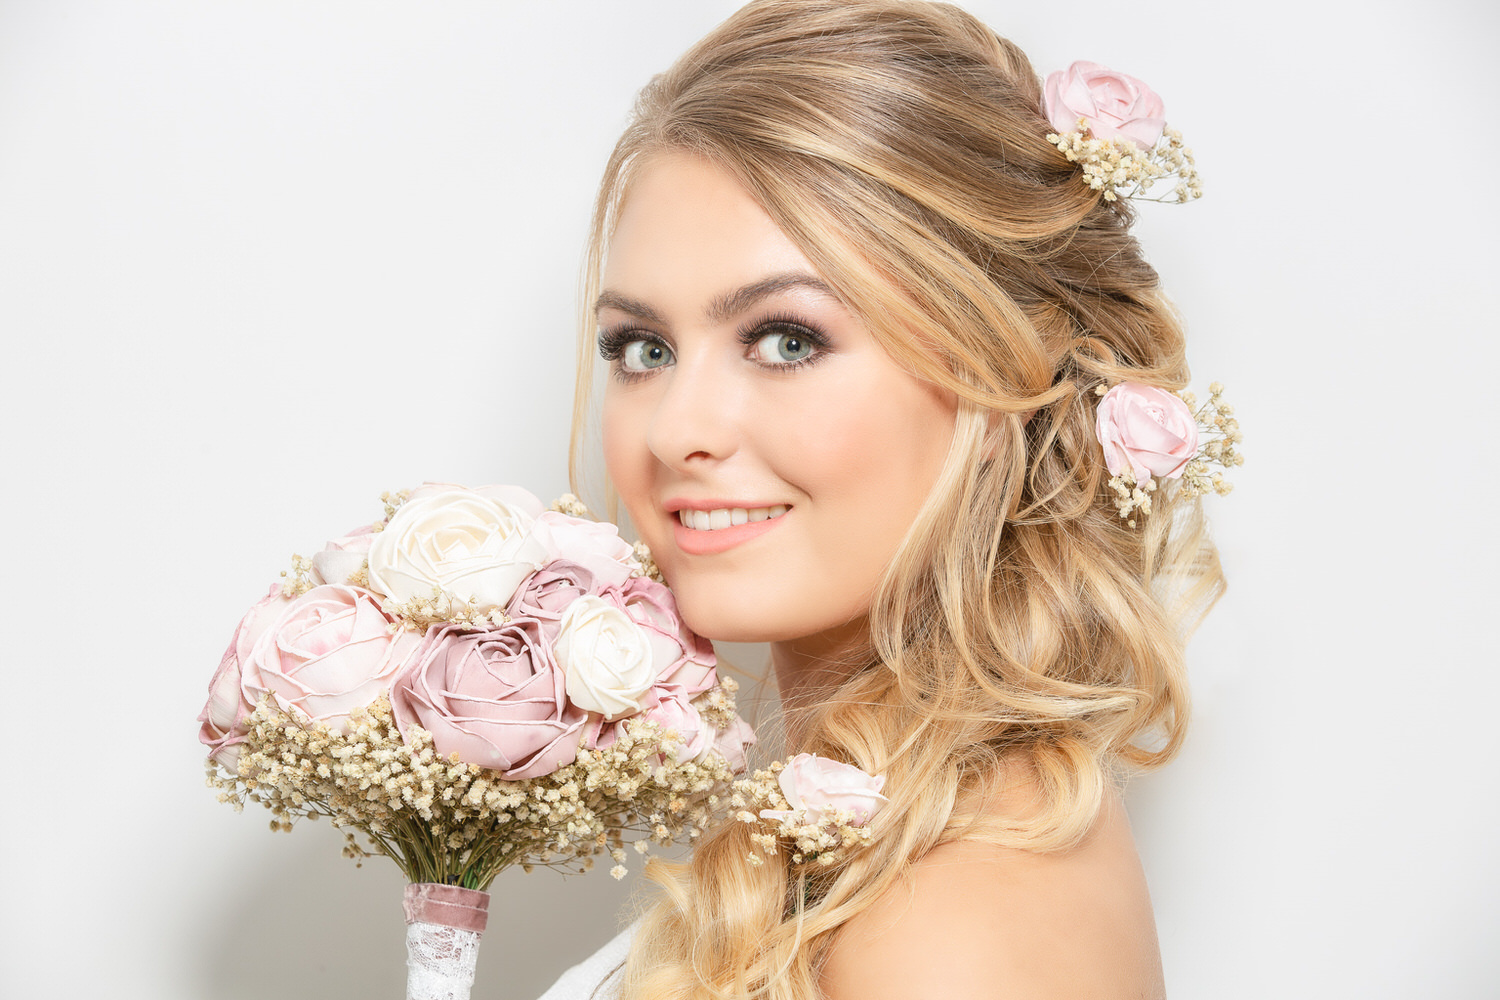 Side portrait of blonde bride holding a wedding bouquet